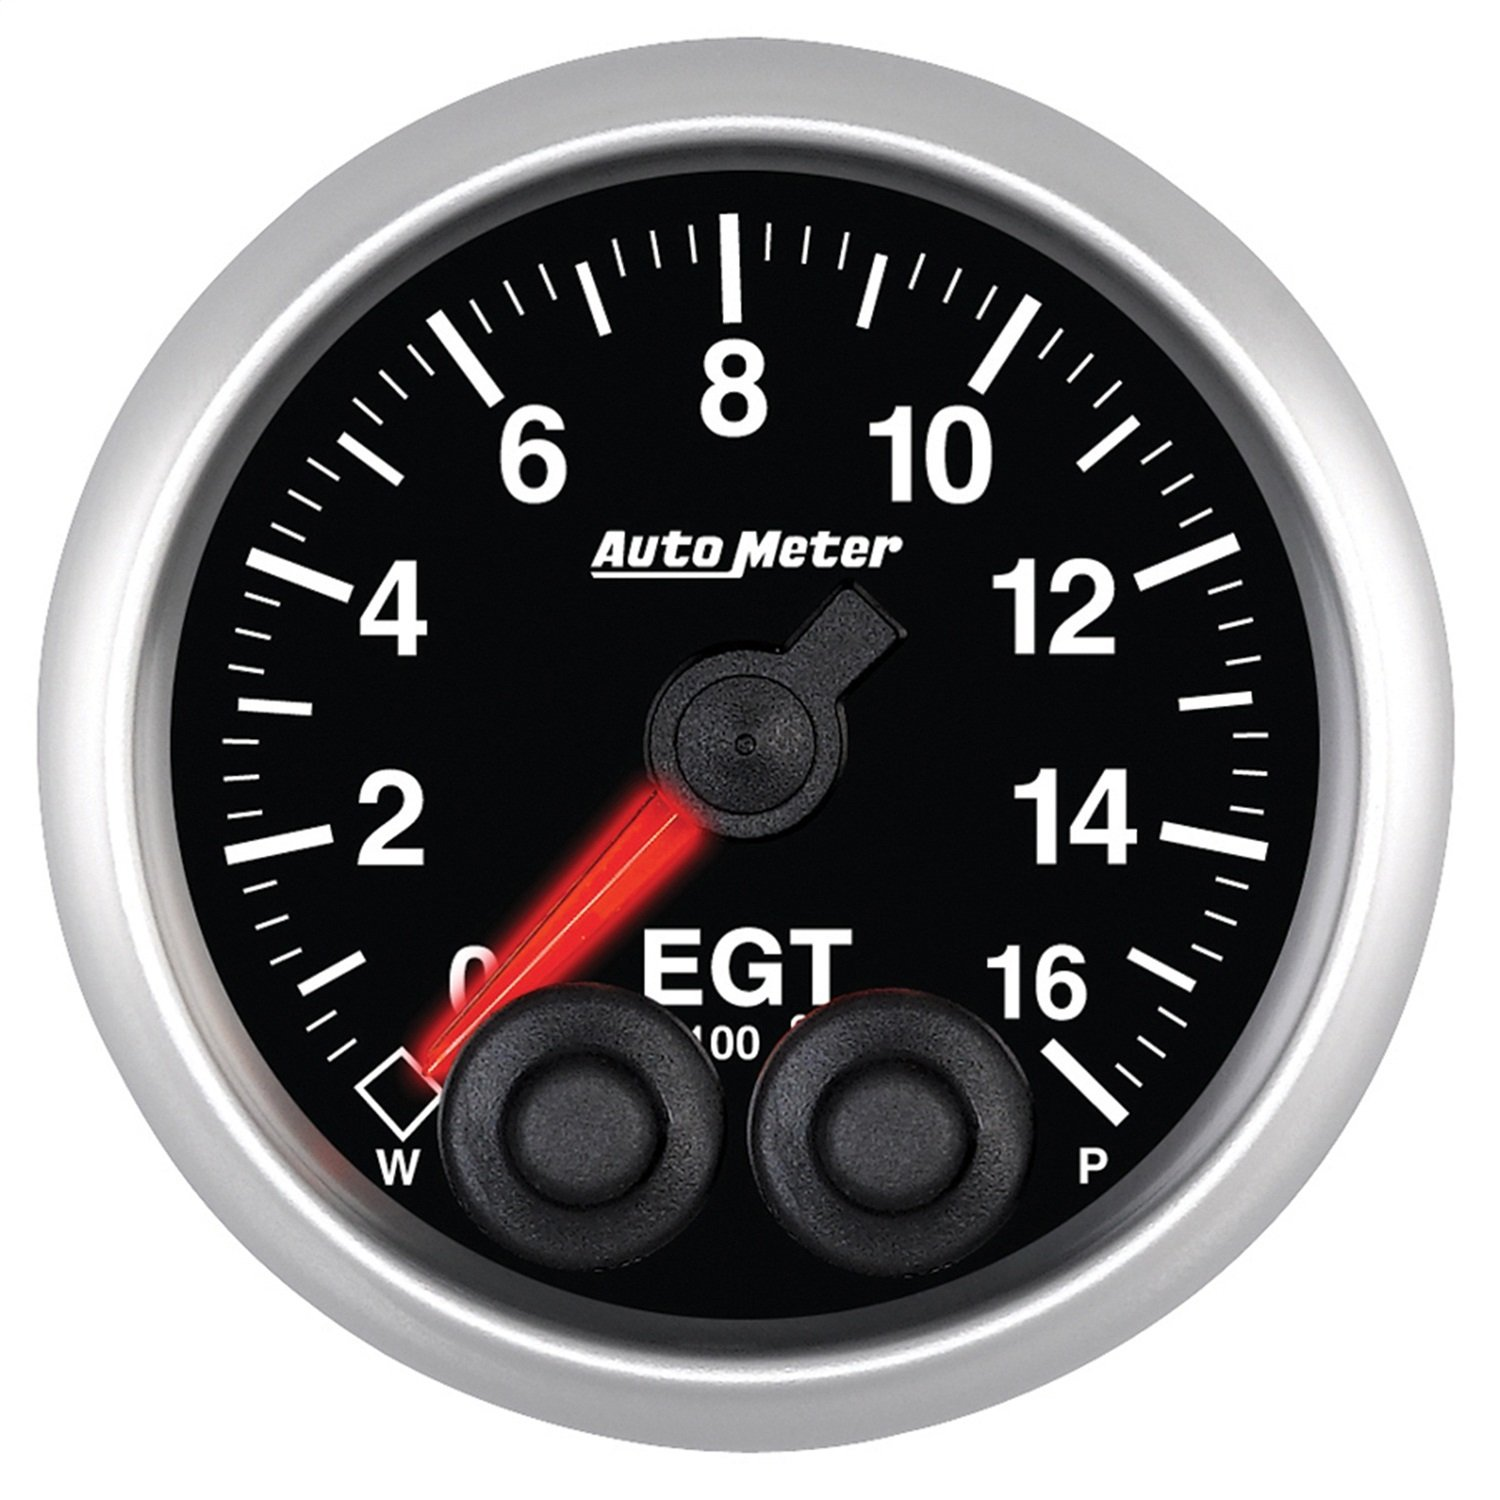 Auto Meter 5646 Elite 2-1/16'' 0-1600 Degree Fahrenheit Exhaust Gas Temperature Pressure Gauge by Auto Meter (Image #1)